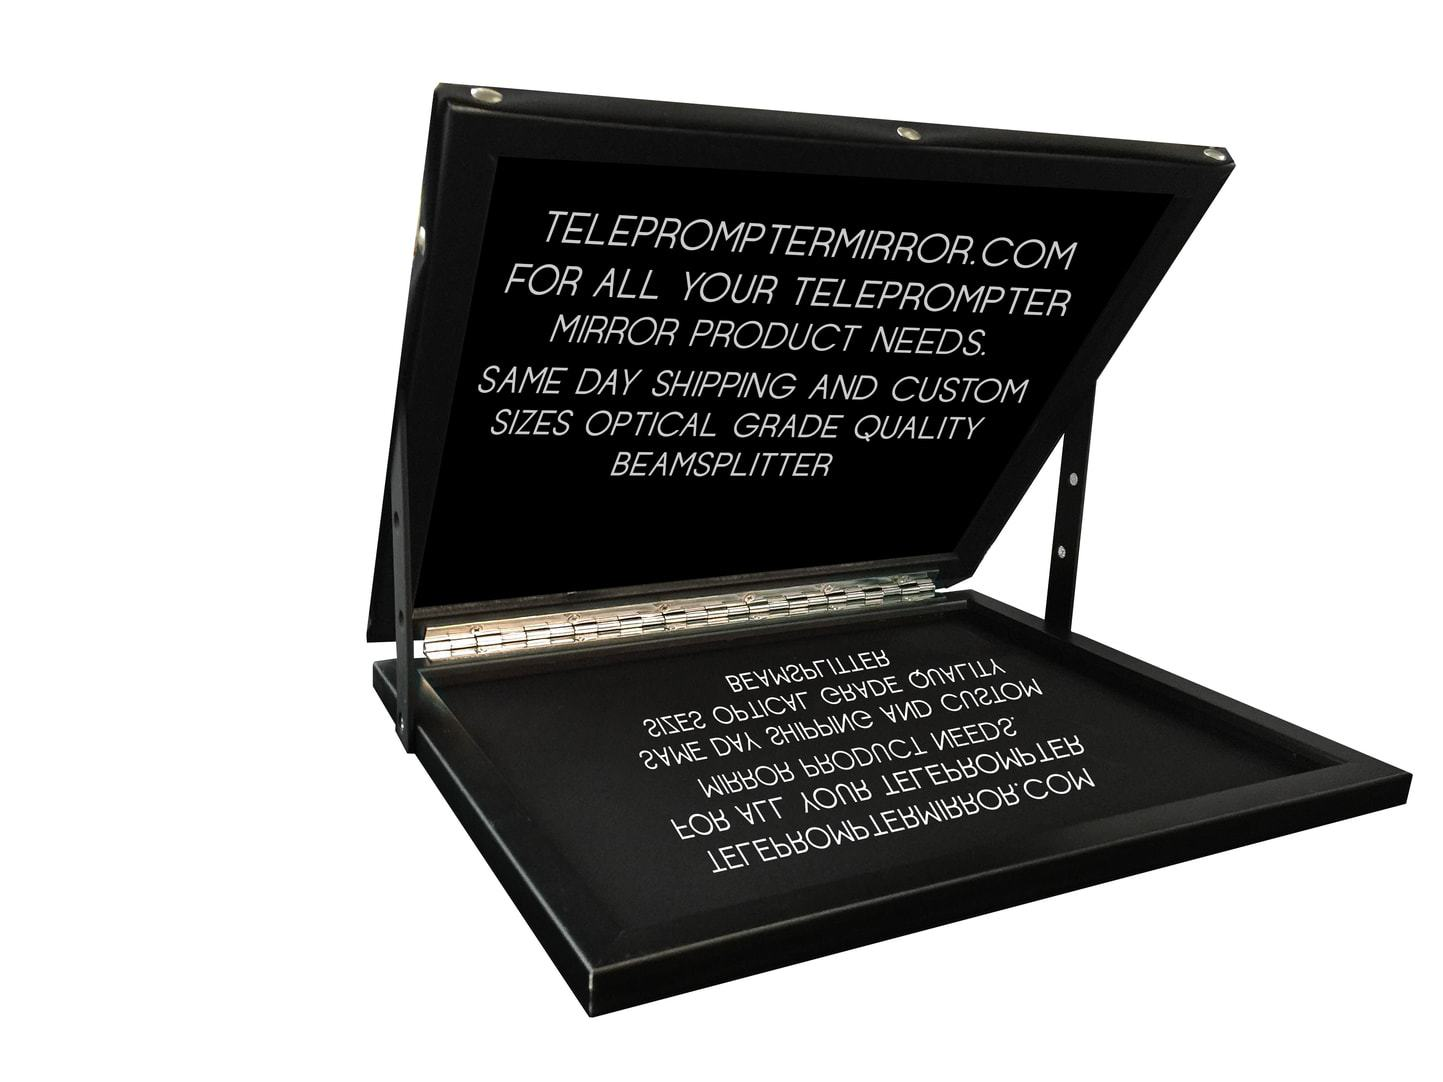 QuickPrompt Teleprompter